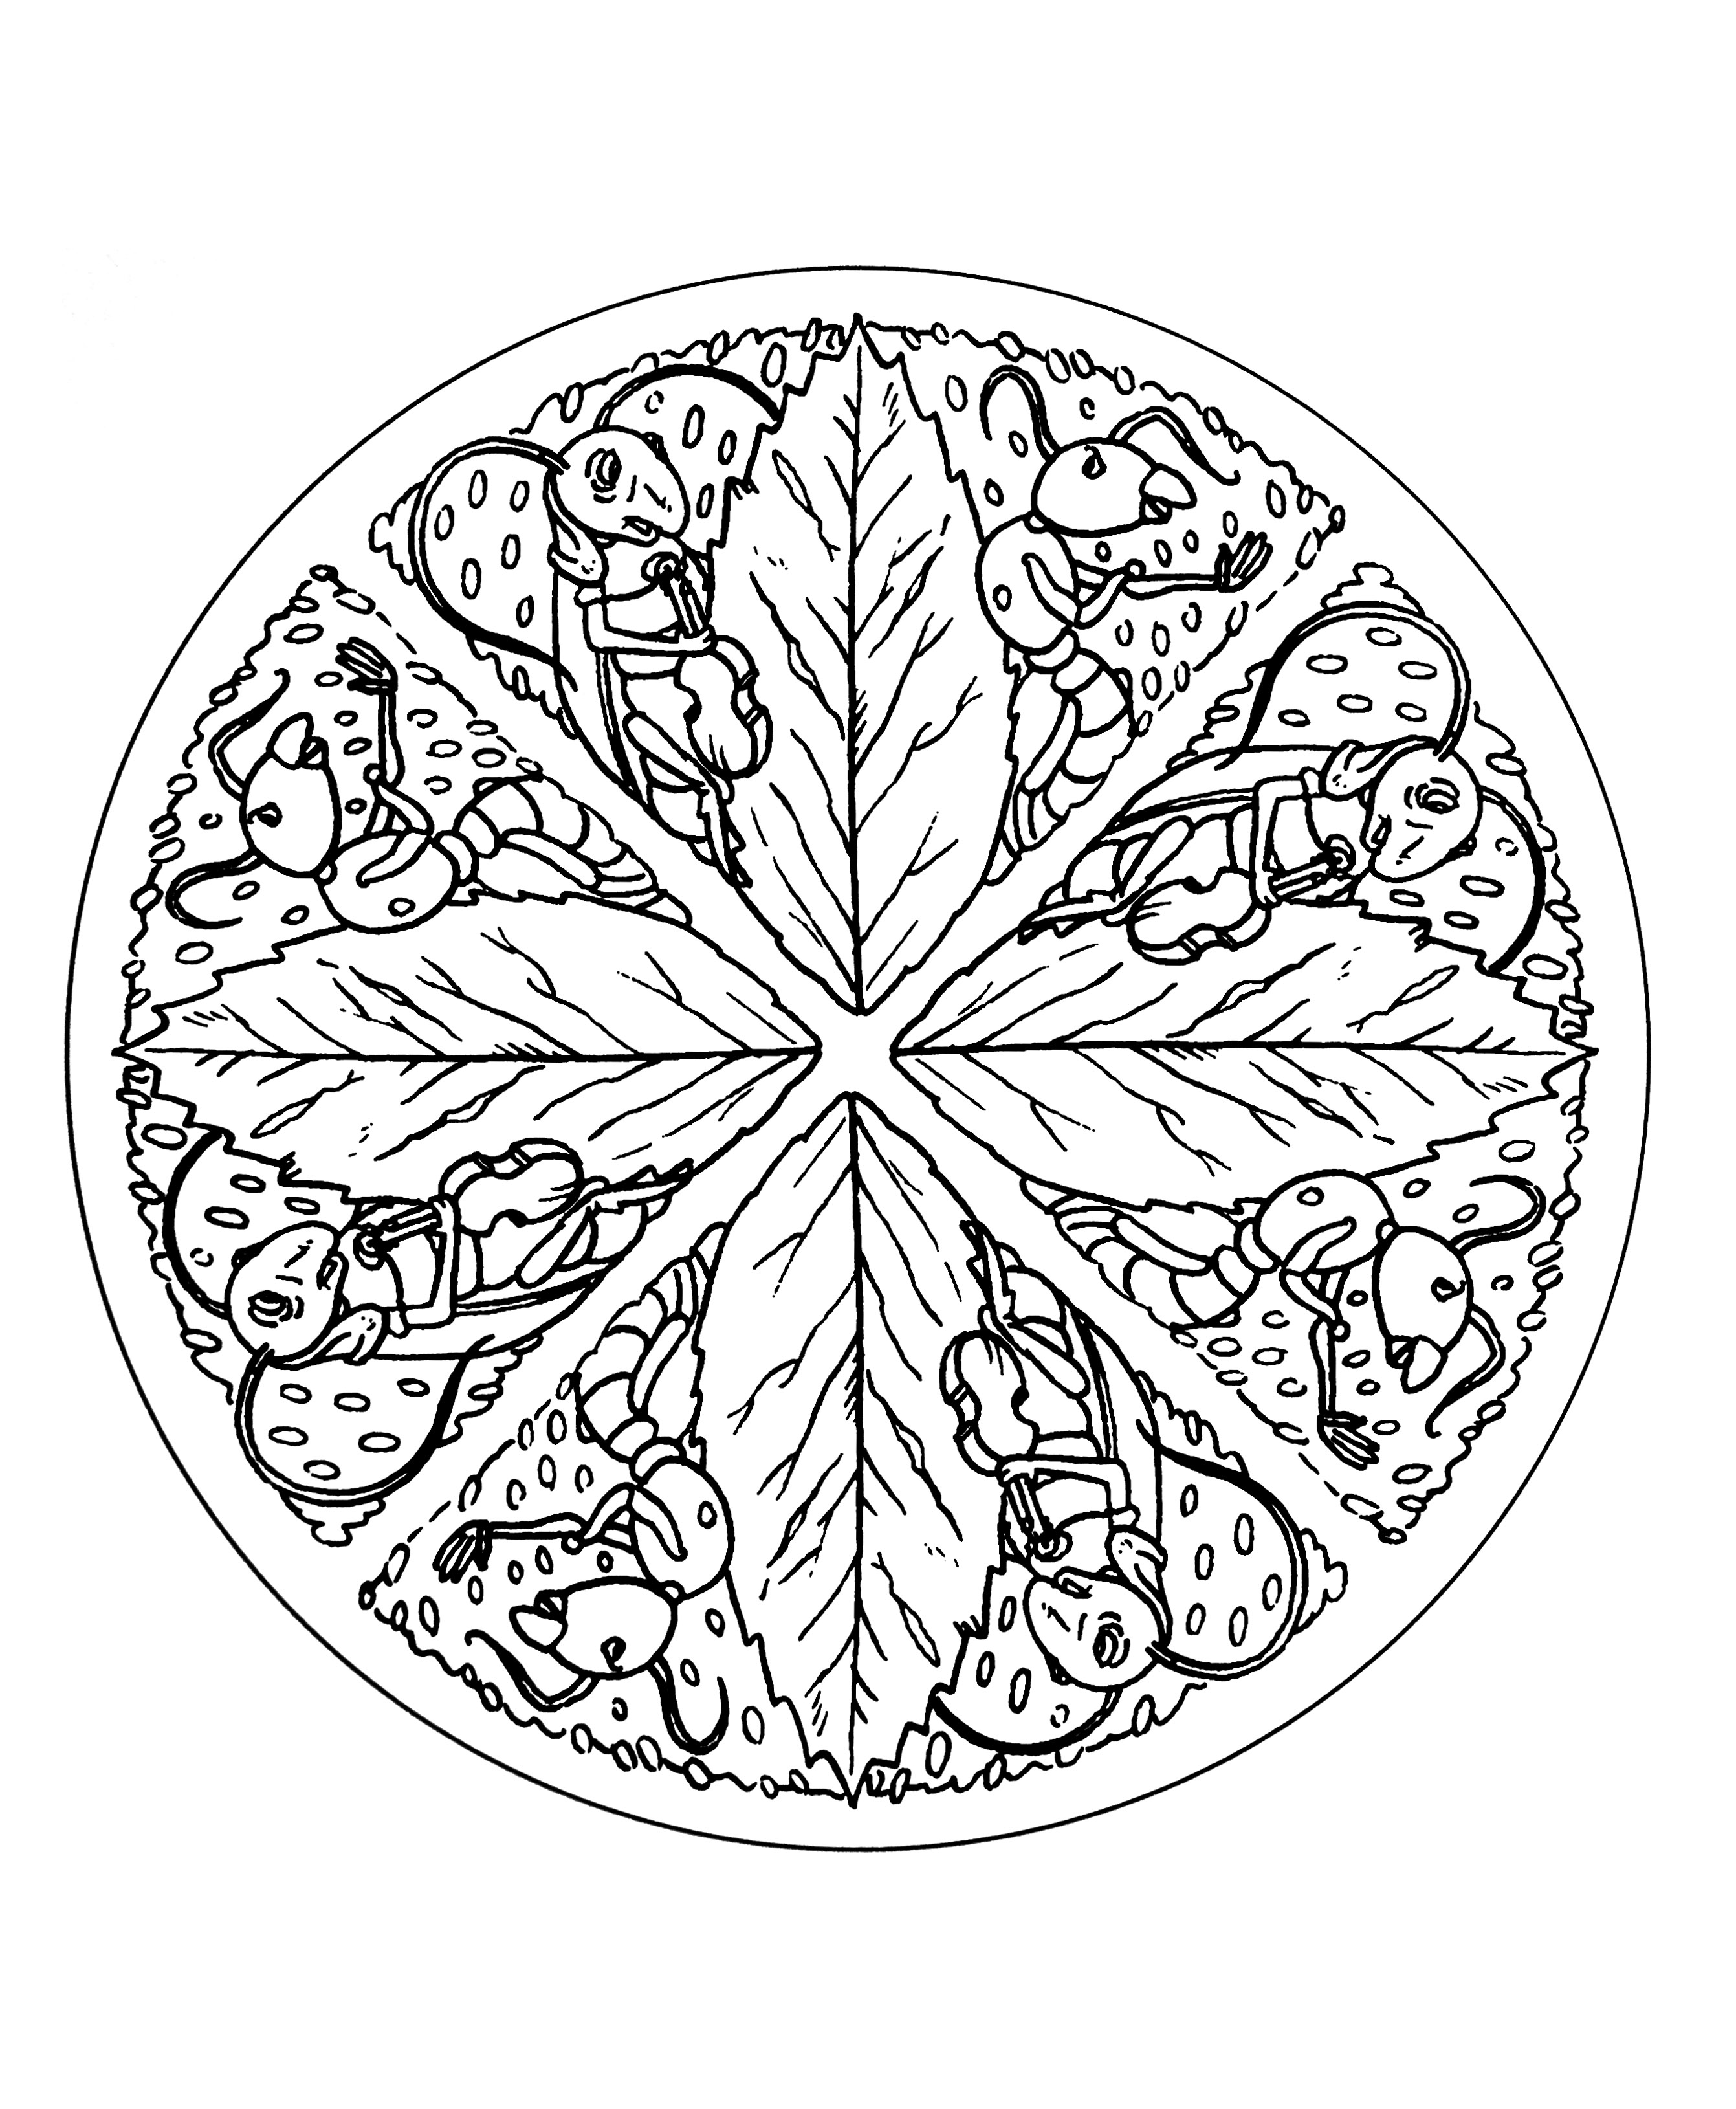 simple mandala coloring page unique and simple mandala coloring page zen anti coloring simple mandala page